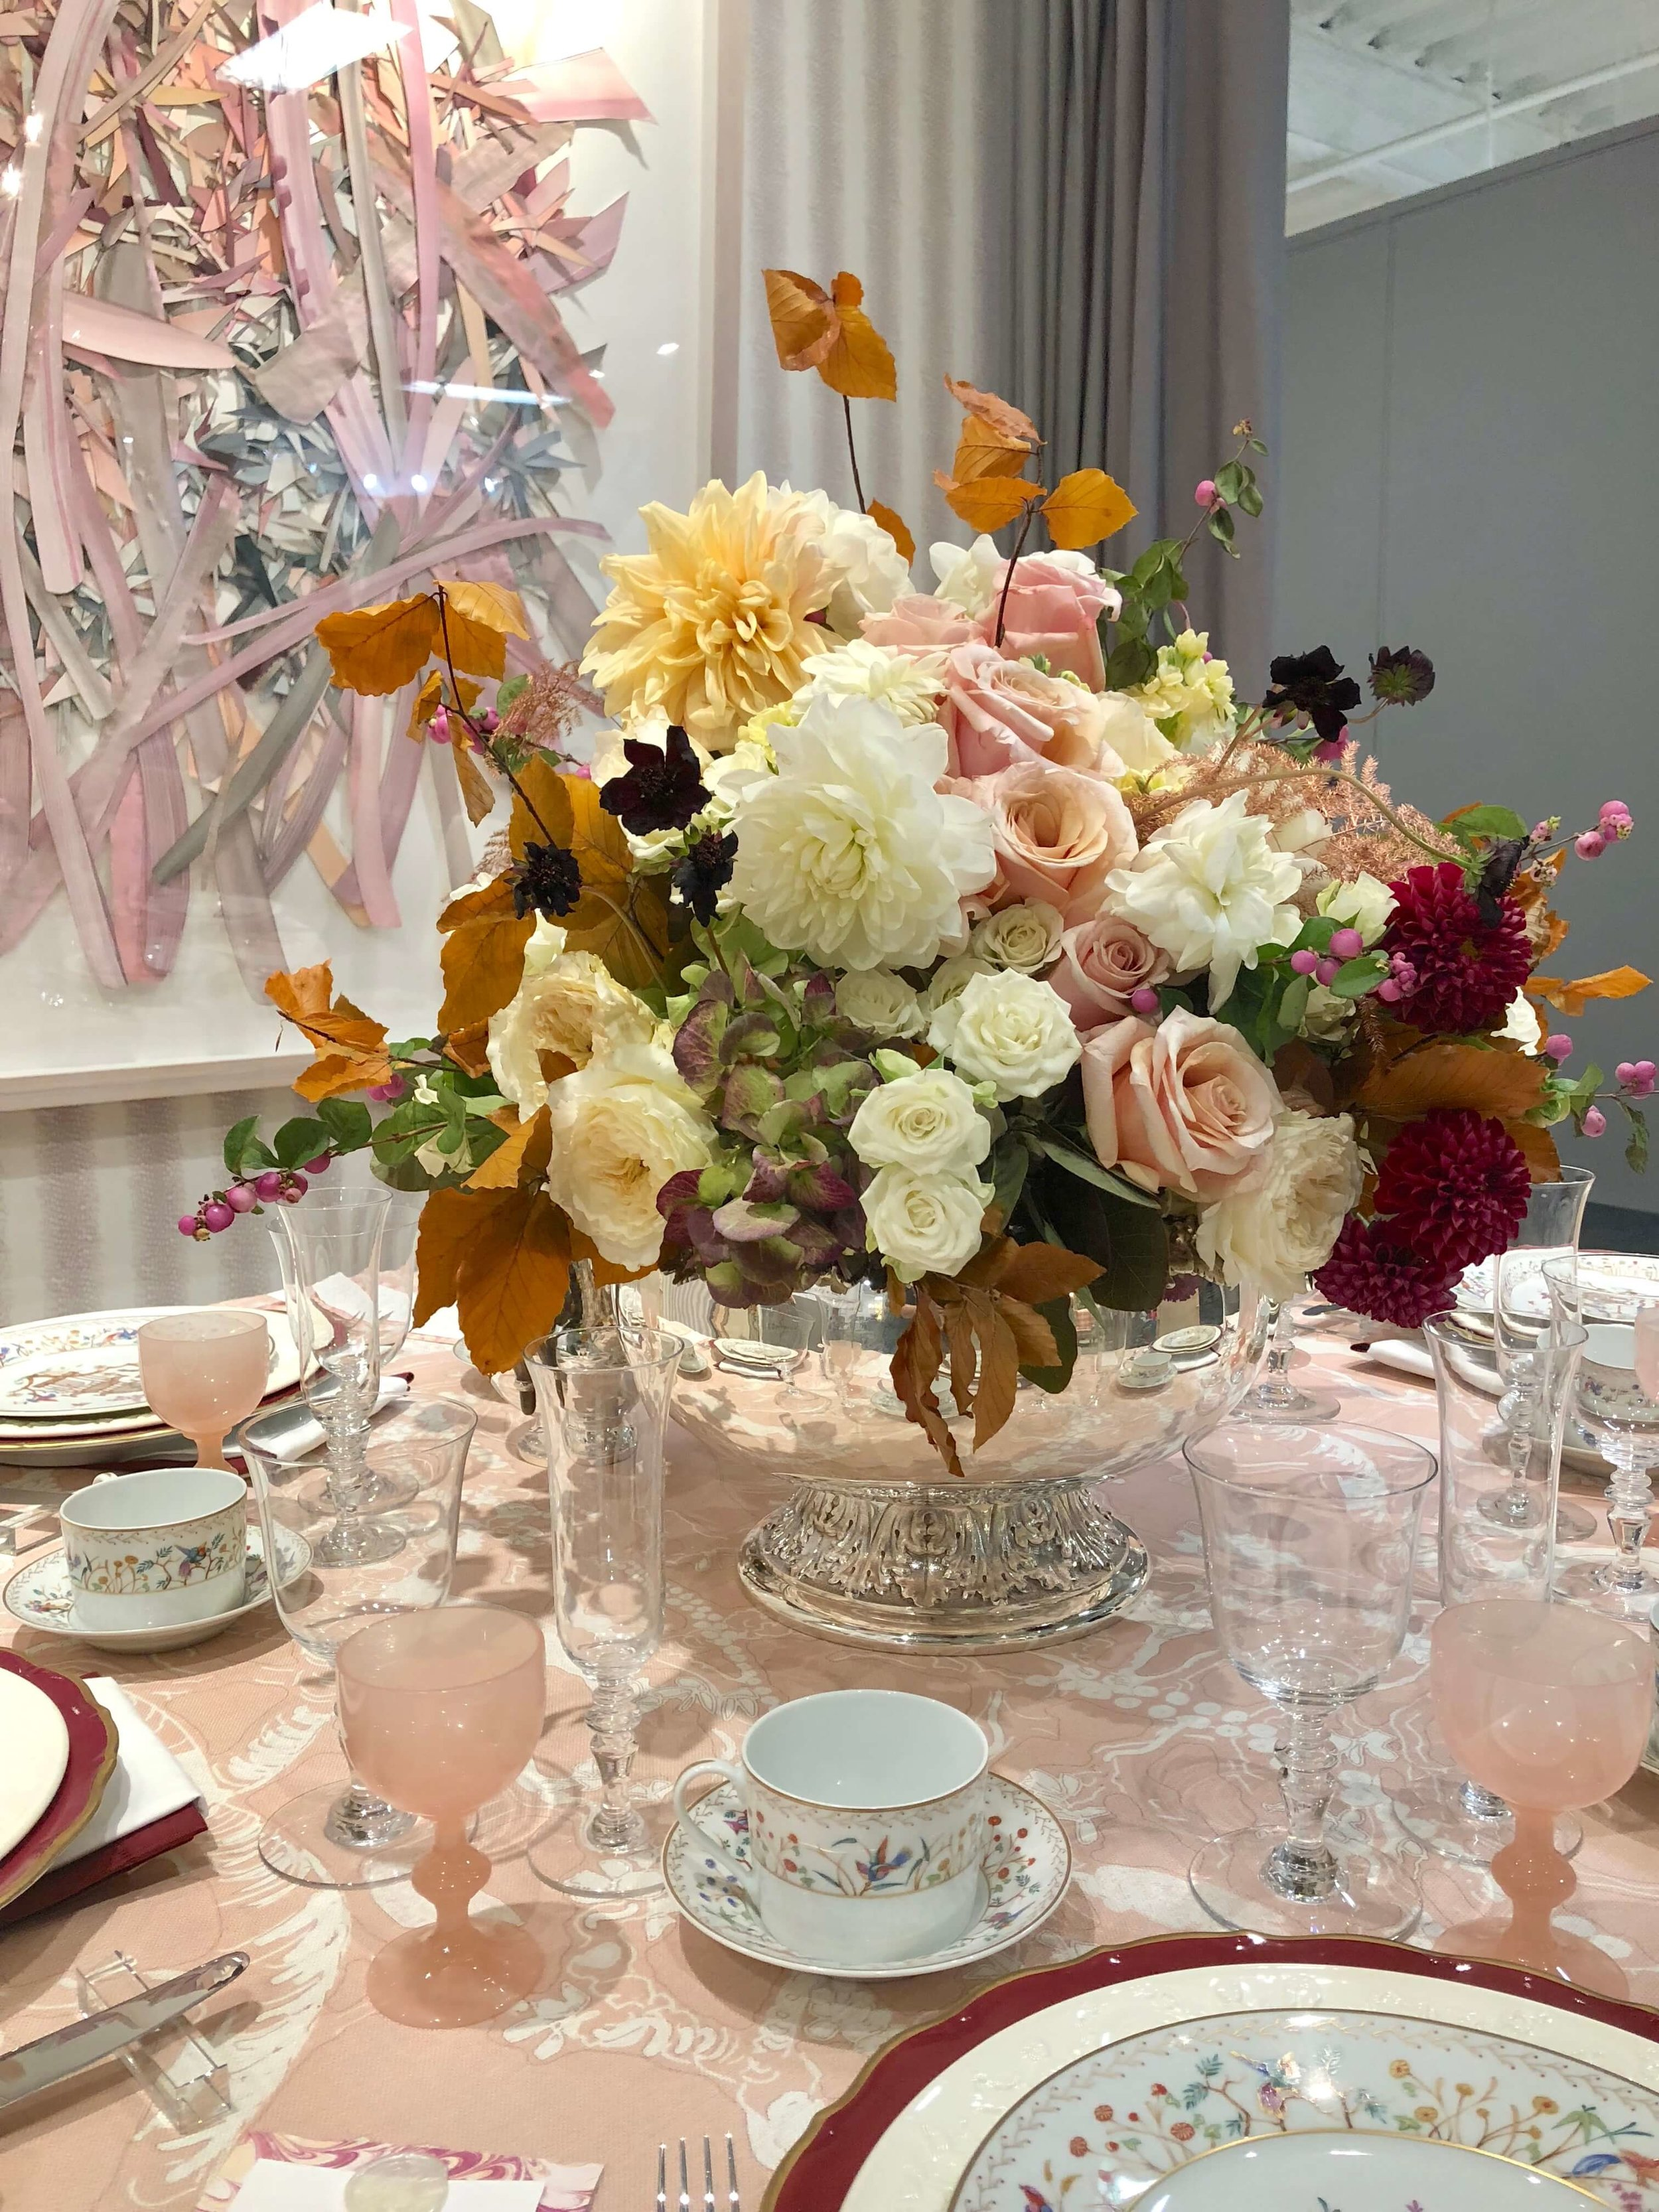 Blush pink dining tabletop designed by Traci Zeller, flowers by Pagoda Event Design #tabletop #blush #diningroom #diningroomideas #diningroomdecor #tablesetting #floralarrangement #blushpinkflowers #centerpiece